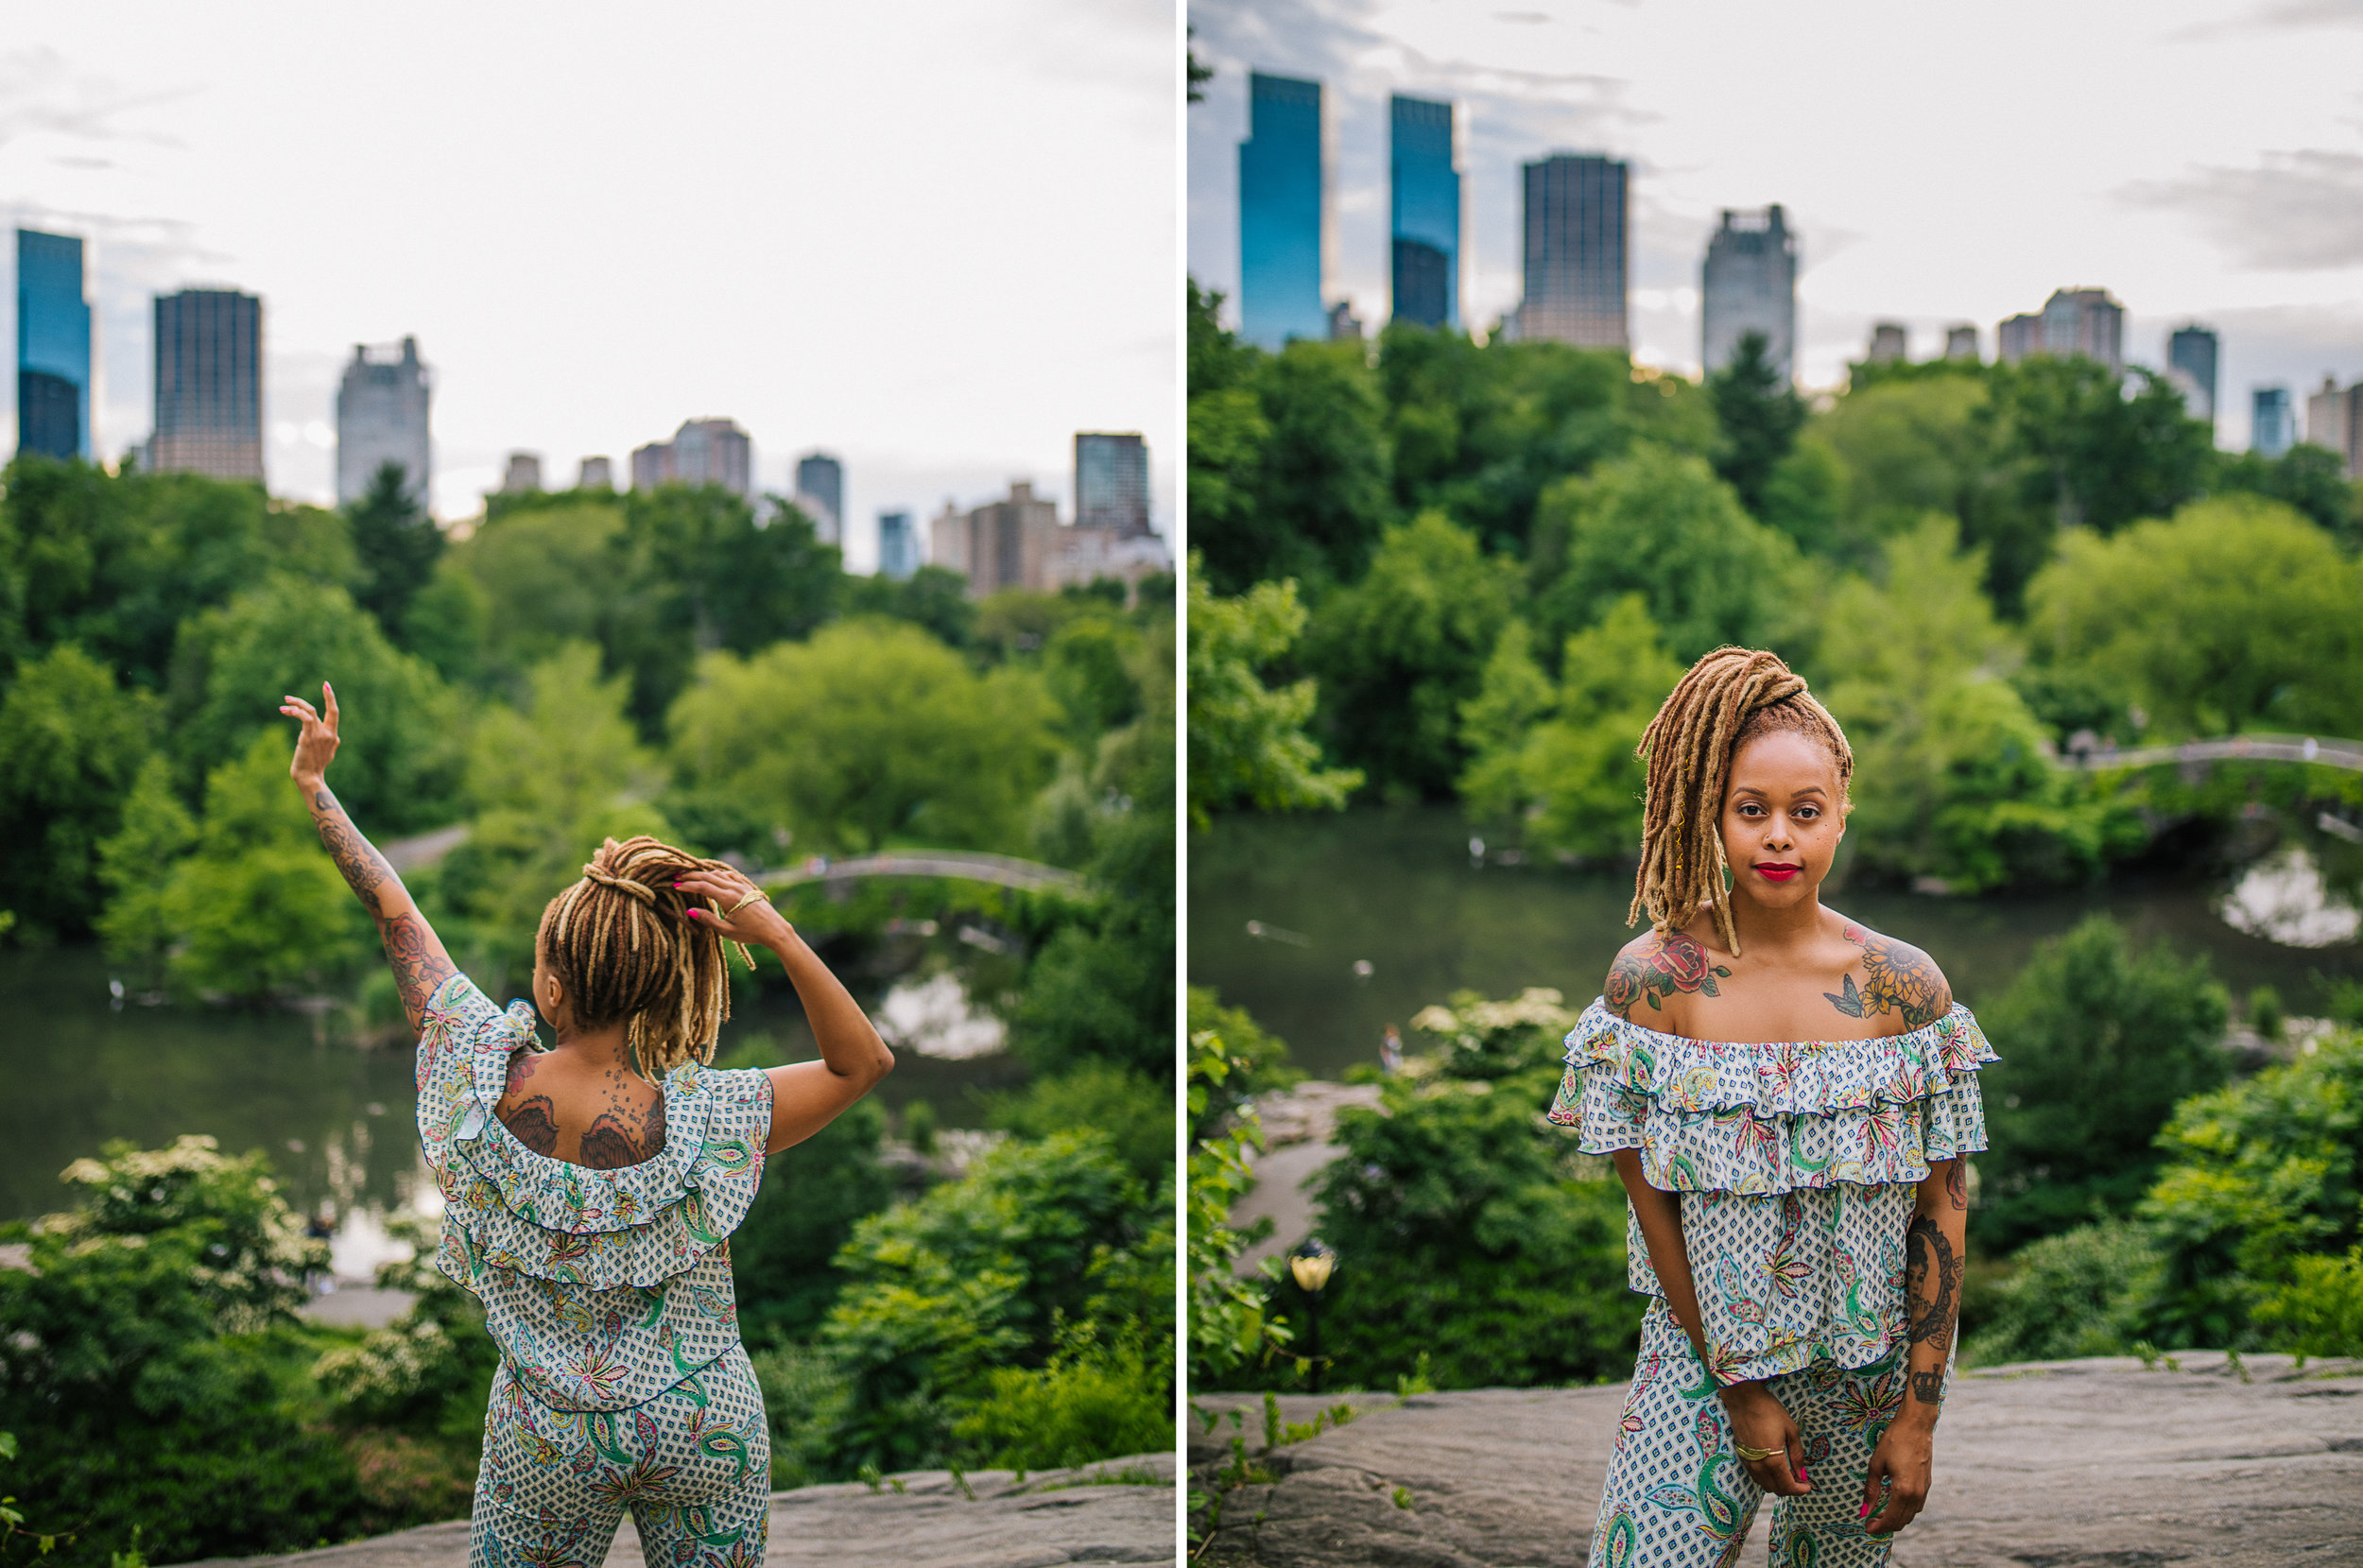 central_park_nyc_portraits_3.jpg